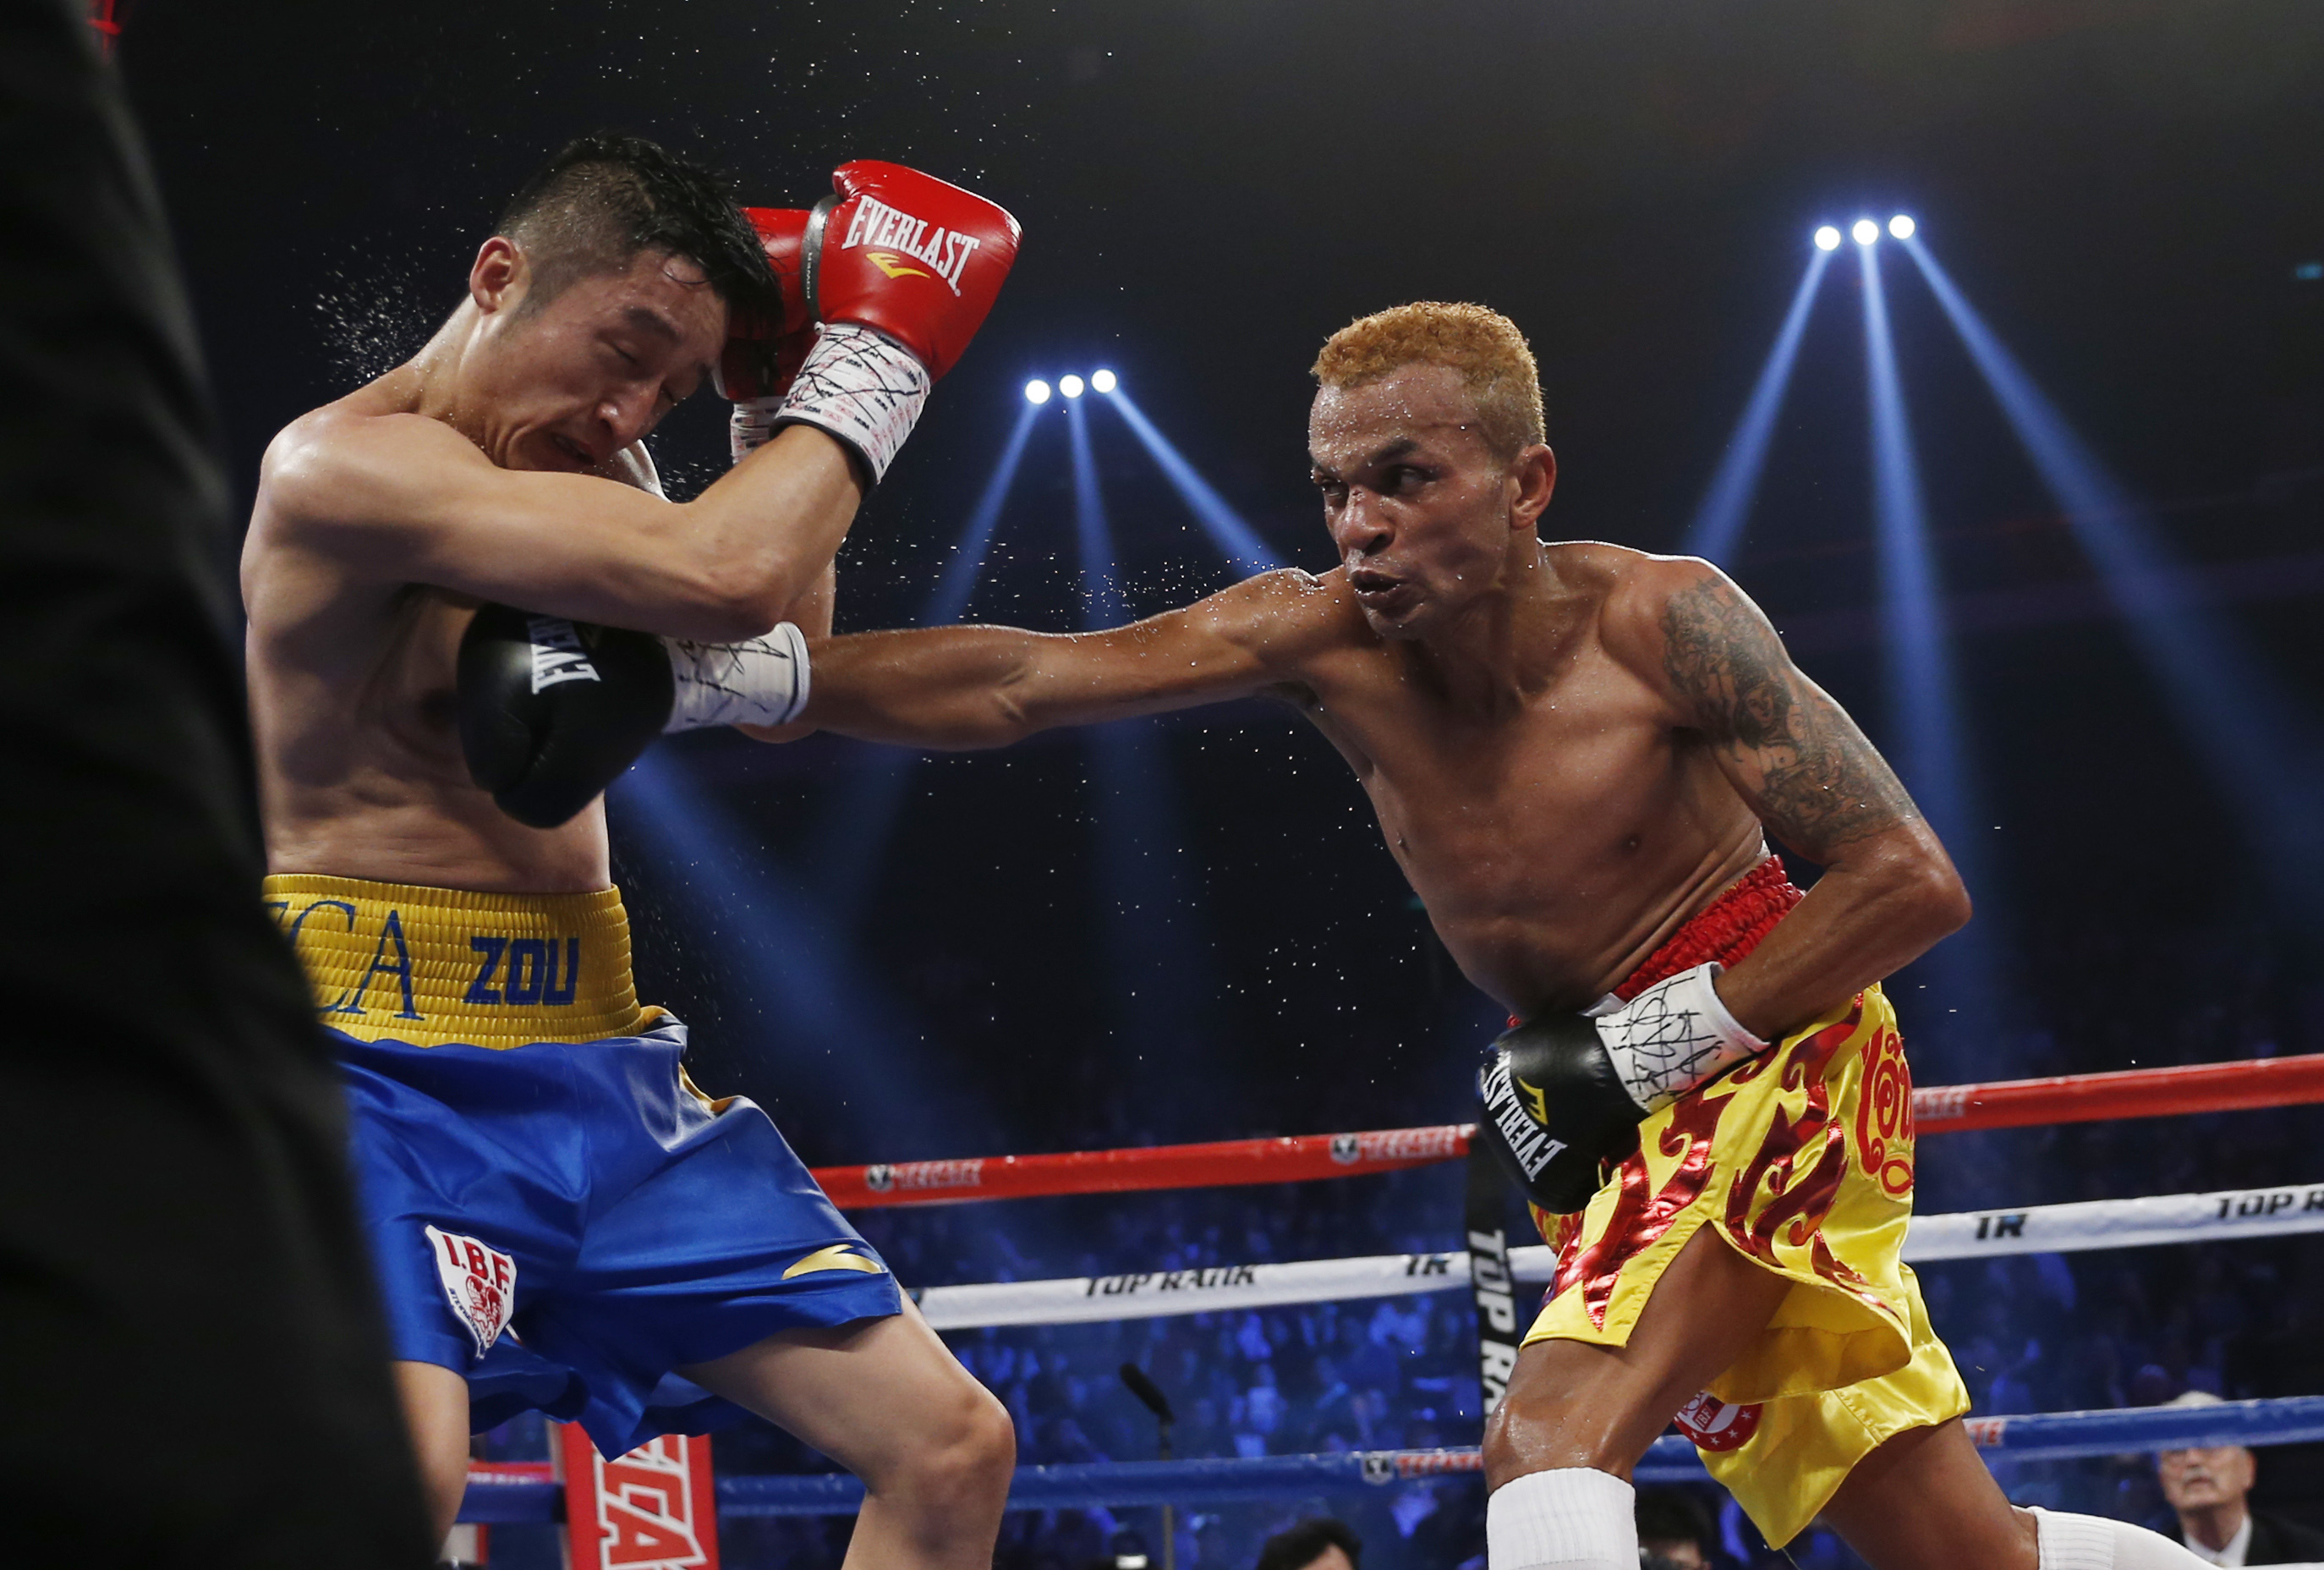 FILE - In this March 7, 2015, file photo, Thailand's Amnat Ruenroeng, right, throws a punch at China's double Olympic gold medalist Zou Shiming during their IBF flyweight title boxing match at the Venetian Macao in Macau. The International Boxing Associat